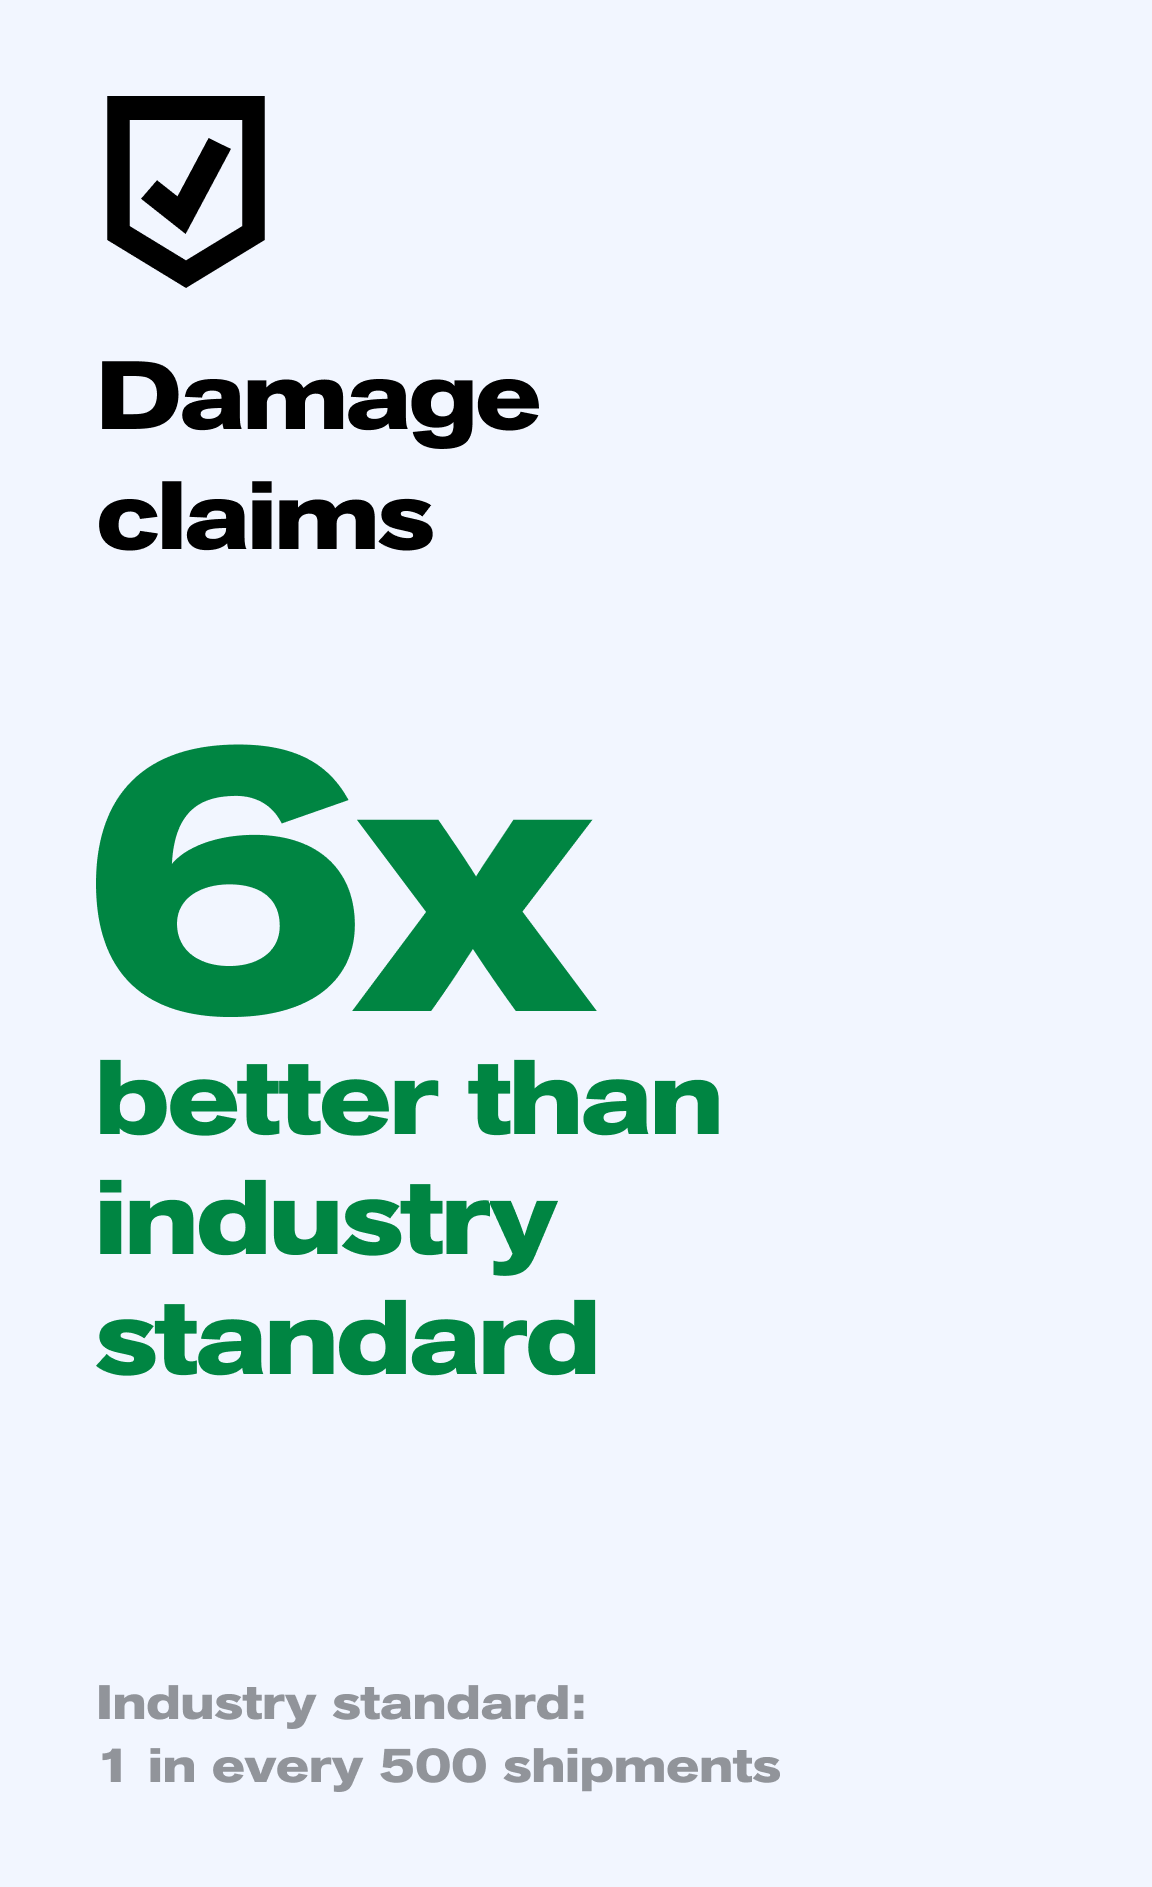 Mothership outperforms traditional carriers by 6x when it comes to freight claims for damage and loss.